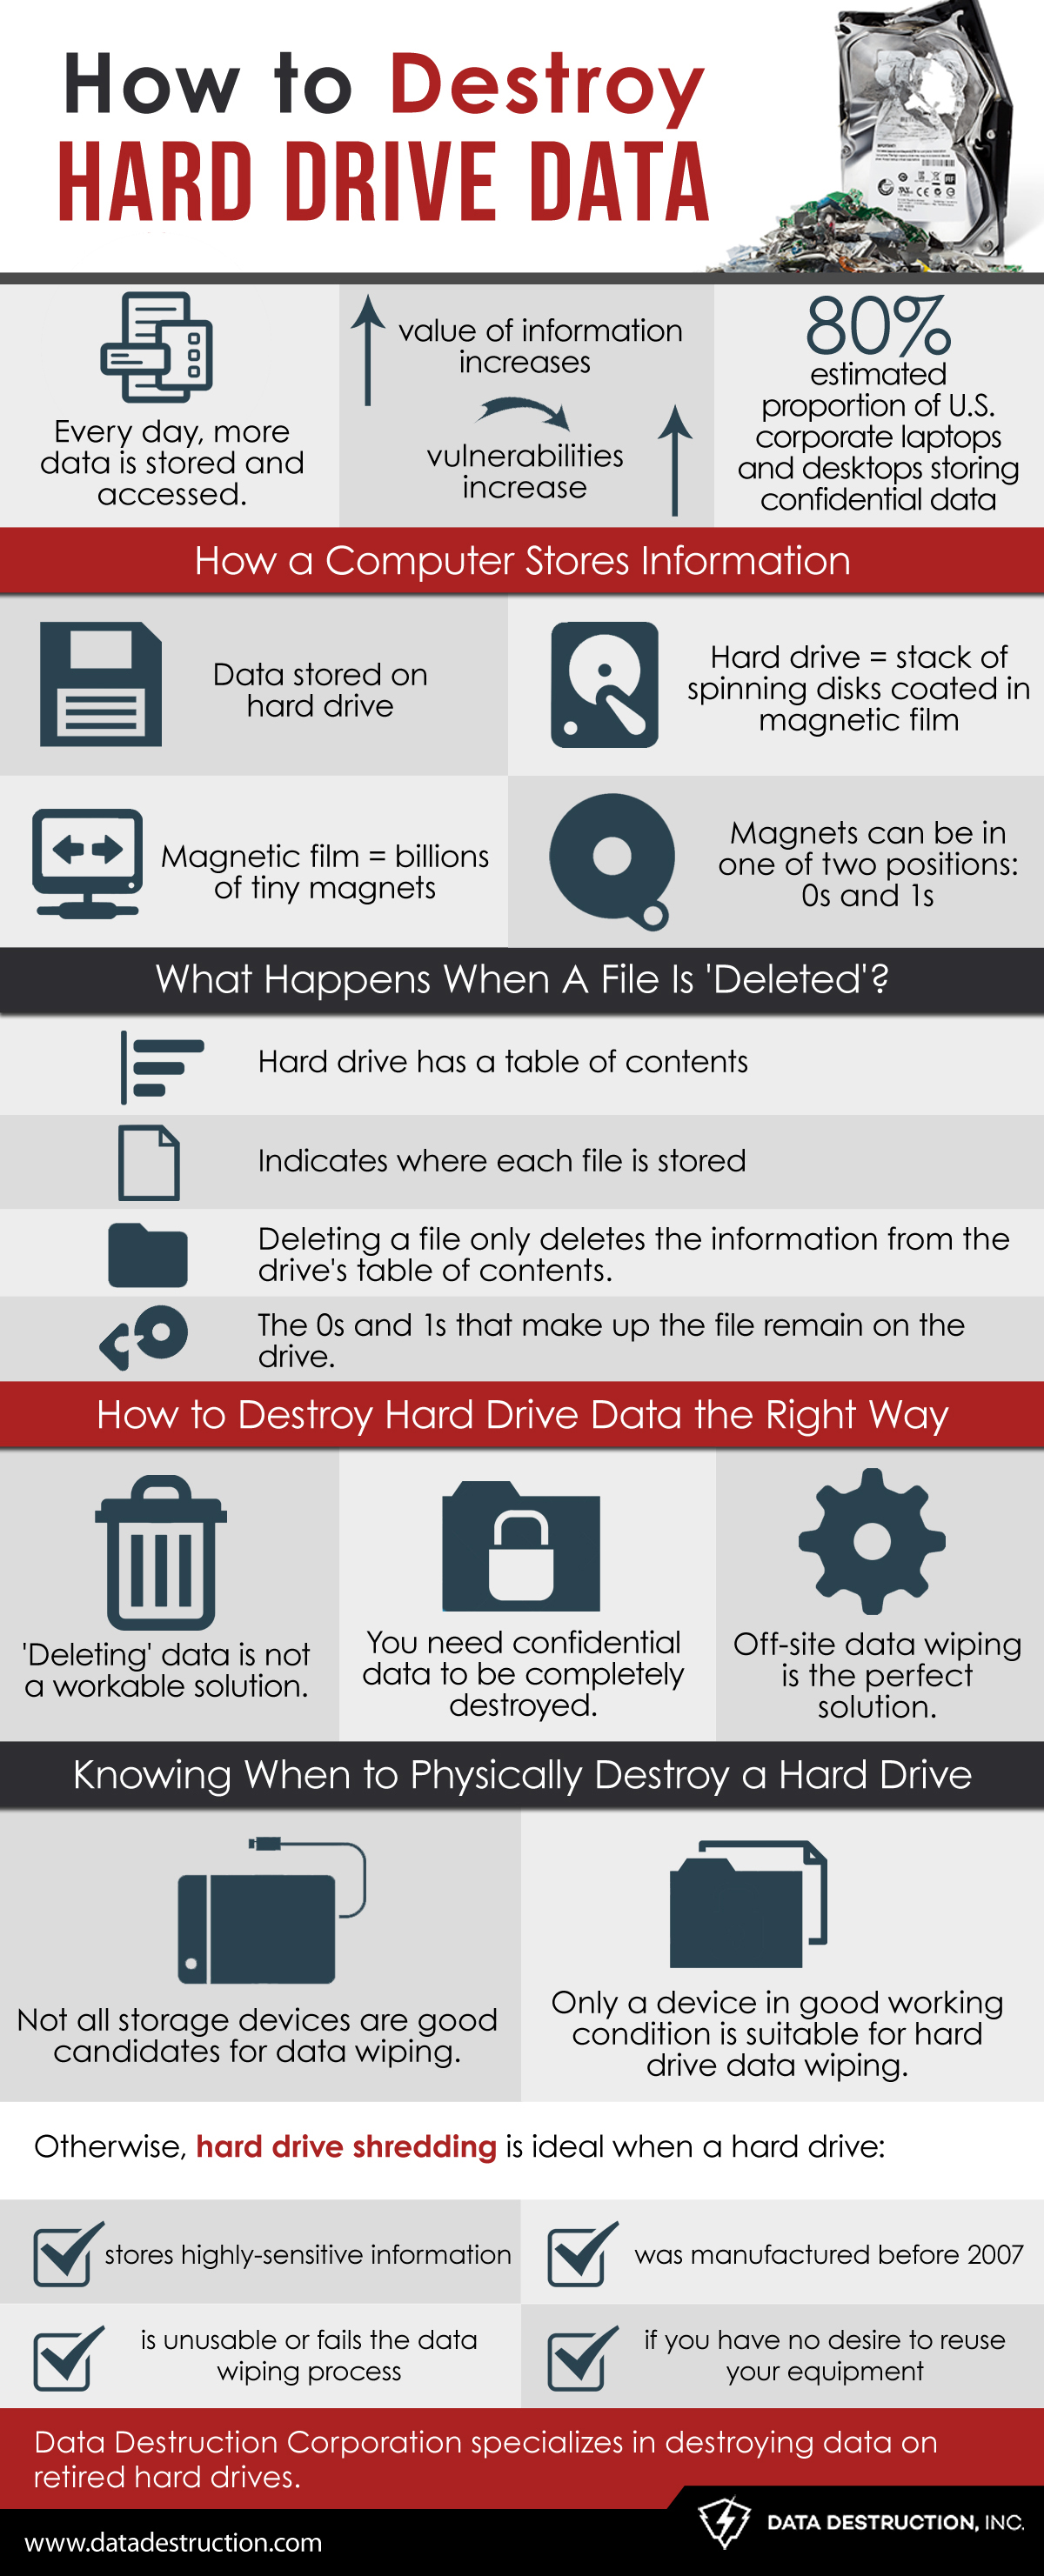 How To Destroy Hard Drive Data Infographic - DD